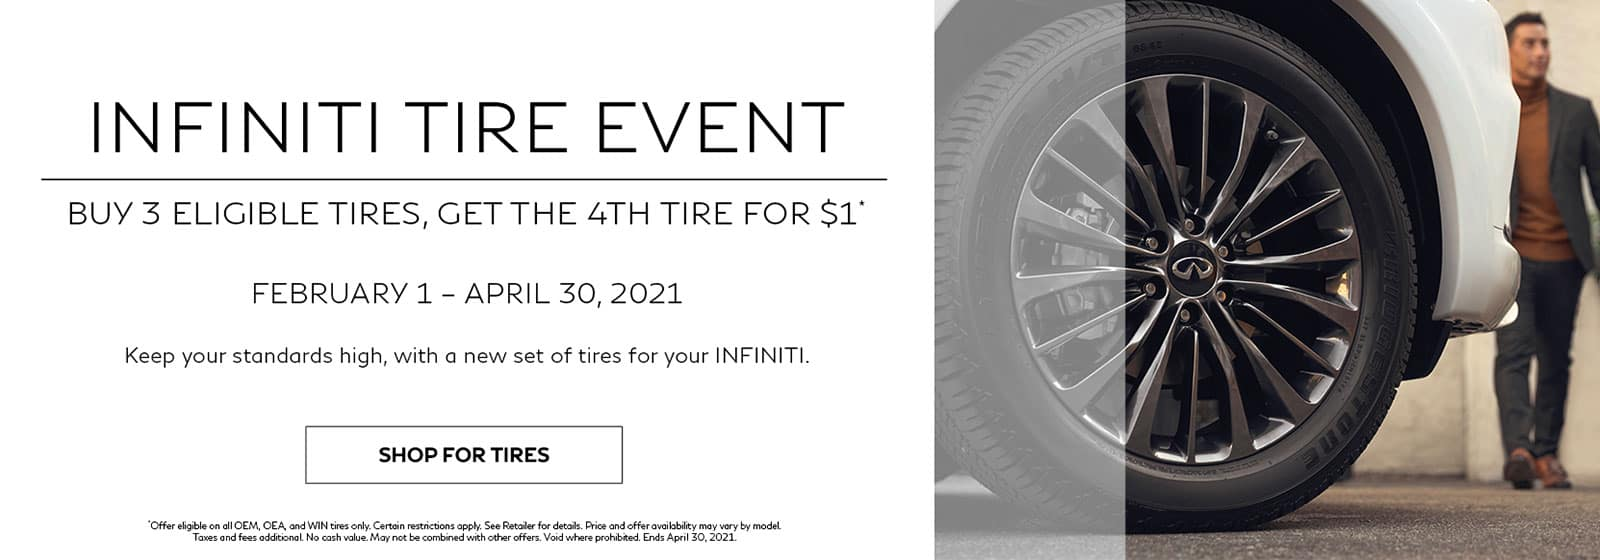 Buy 3 Tires, Get the 4th Tire for $1!